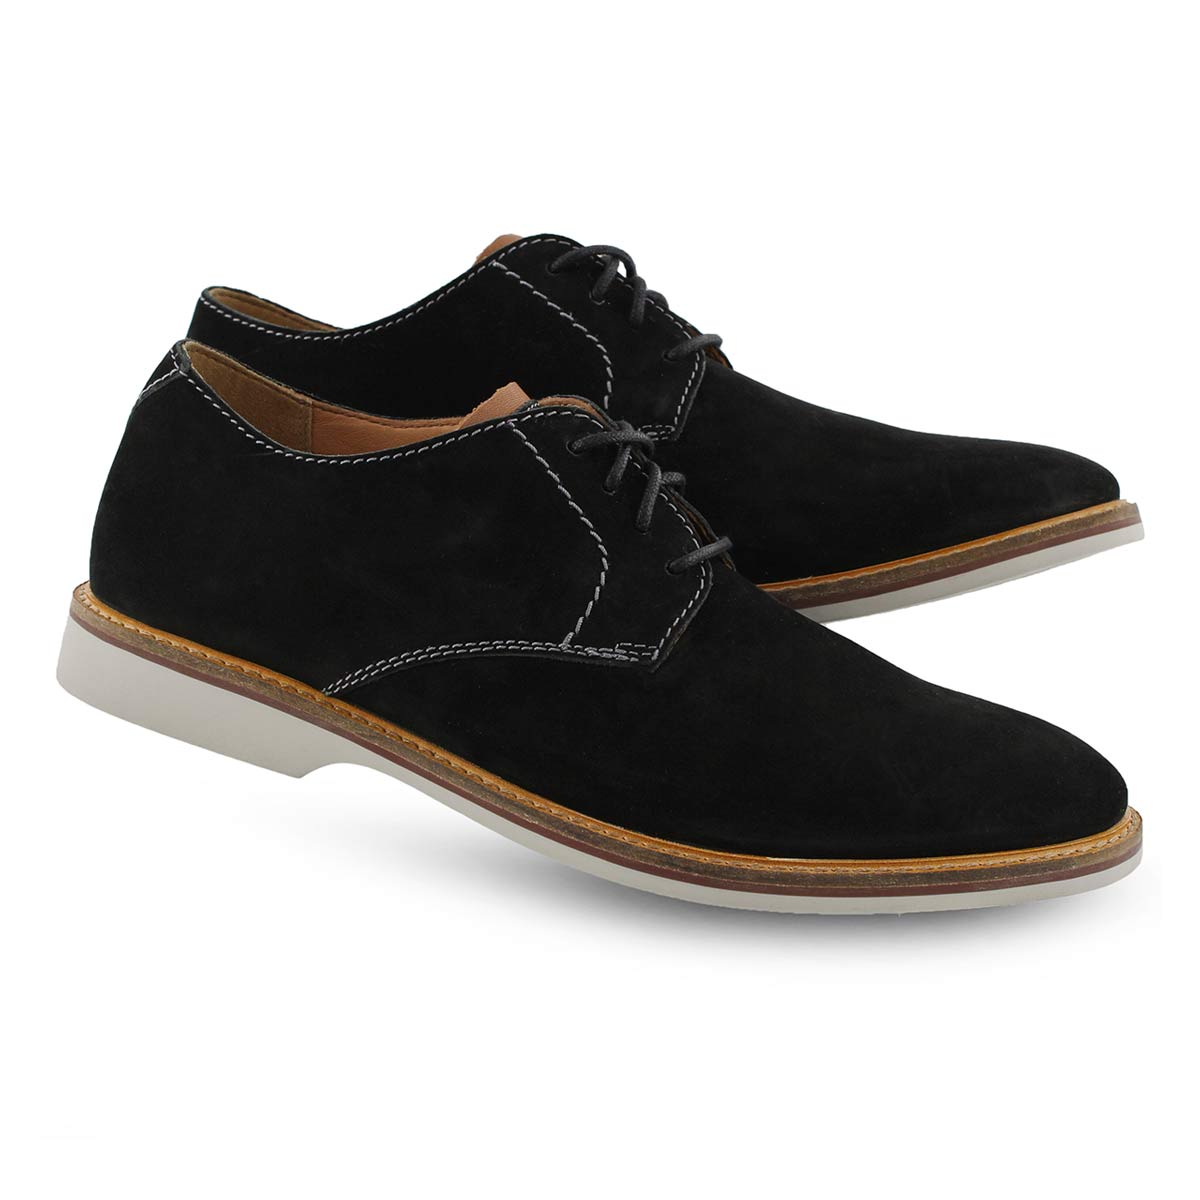 Men's ATTICUS LACE black dress oxfords